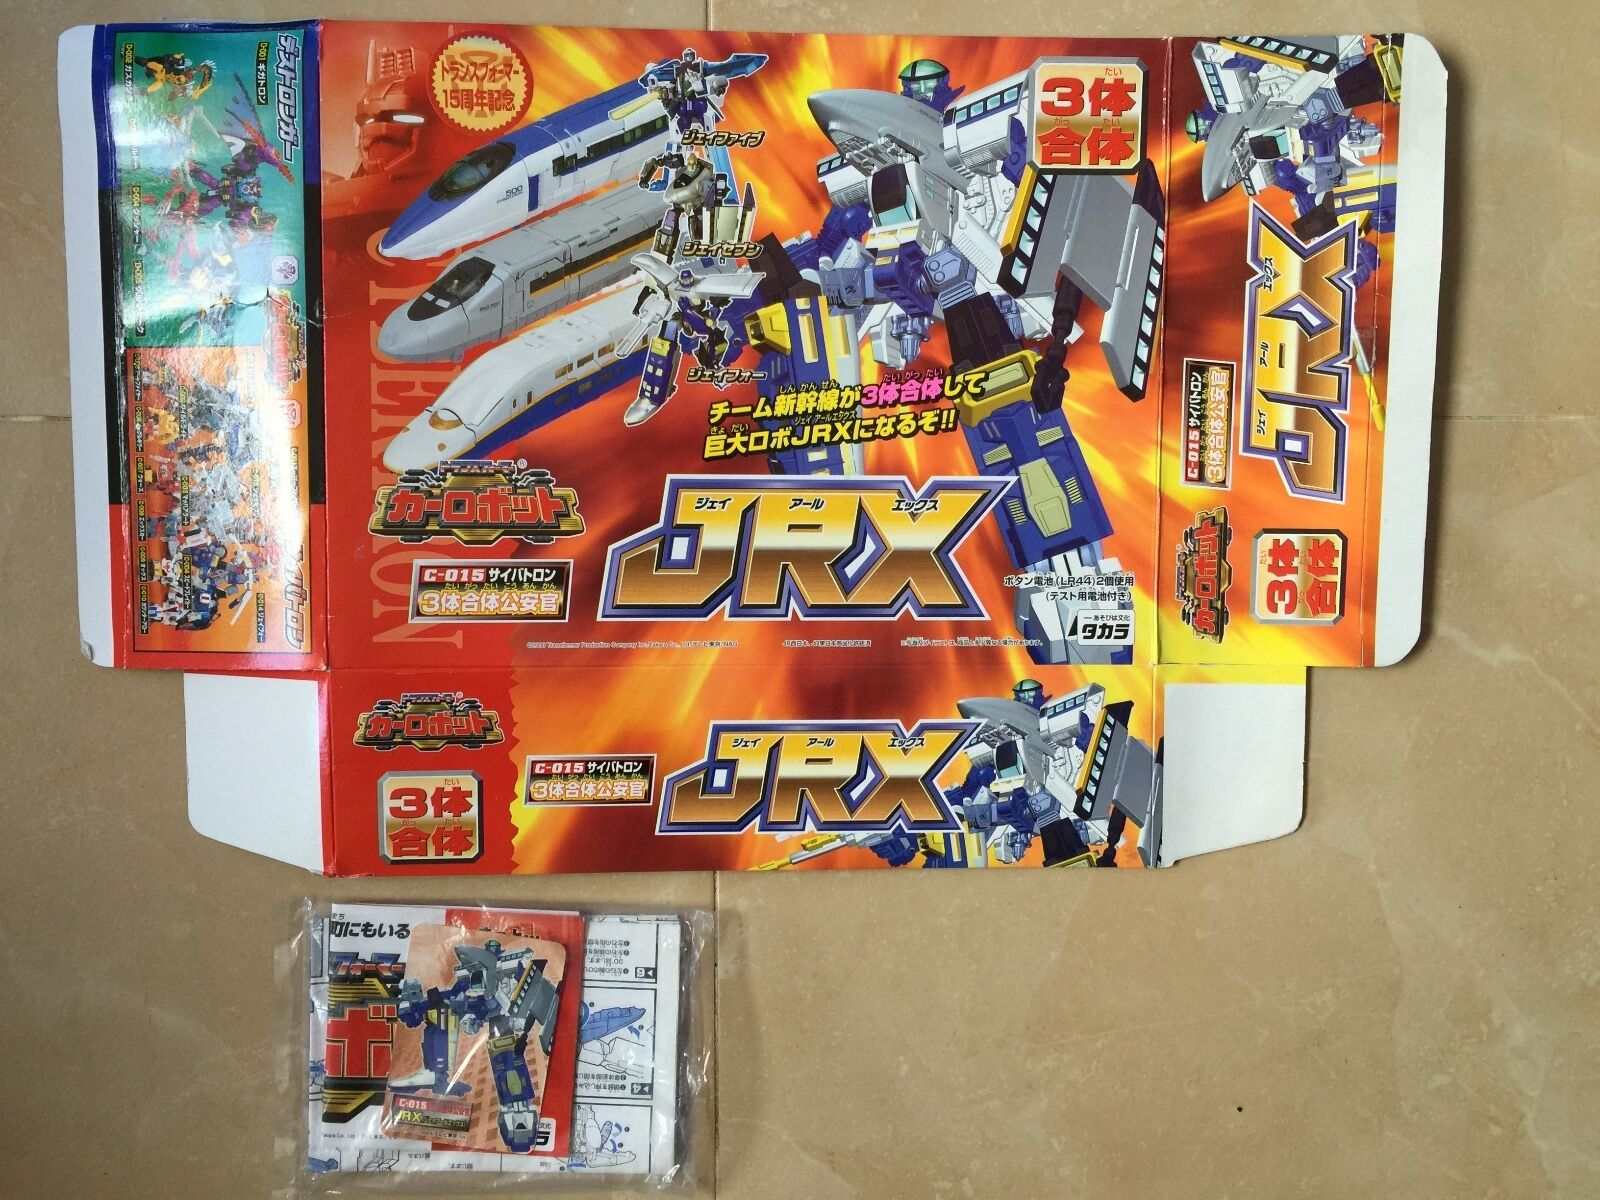 Transformers RID 2000 BOX & paperwork C-015 JRX trainbots TAKARA